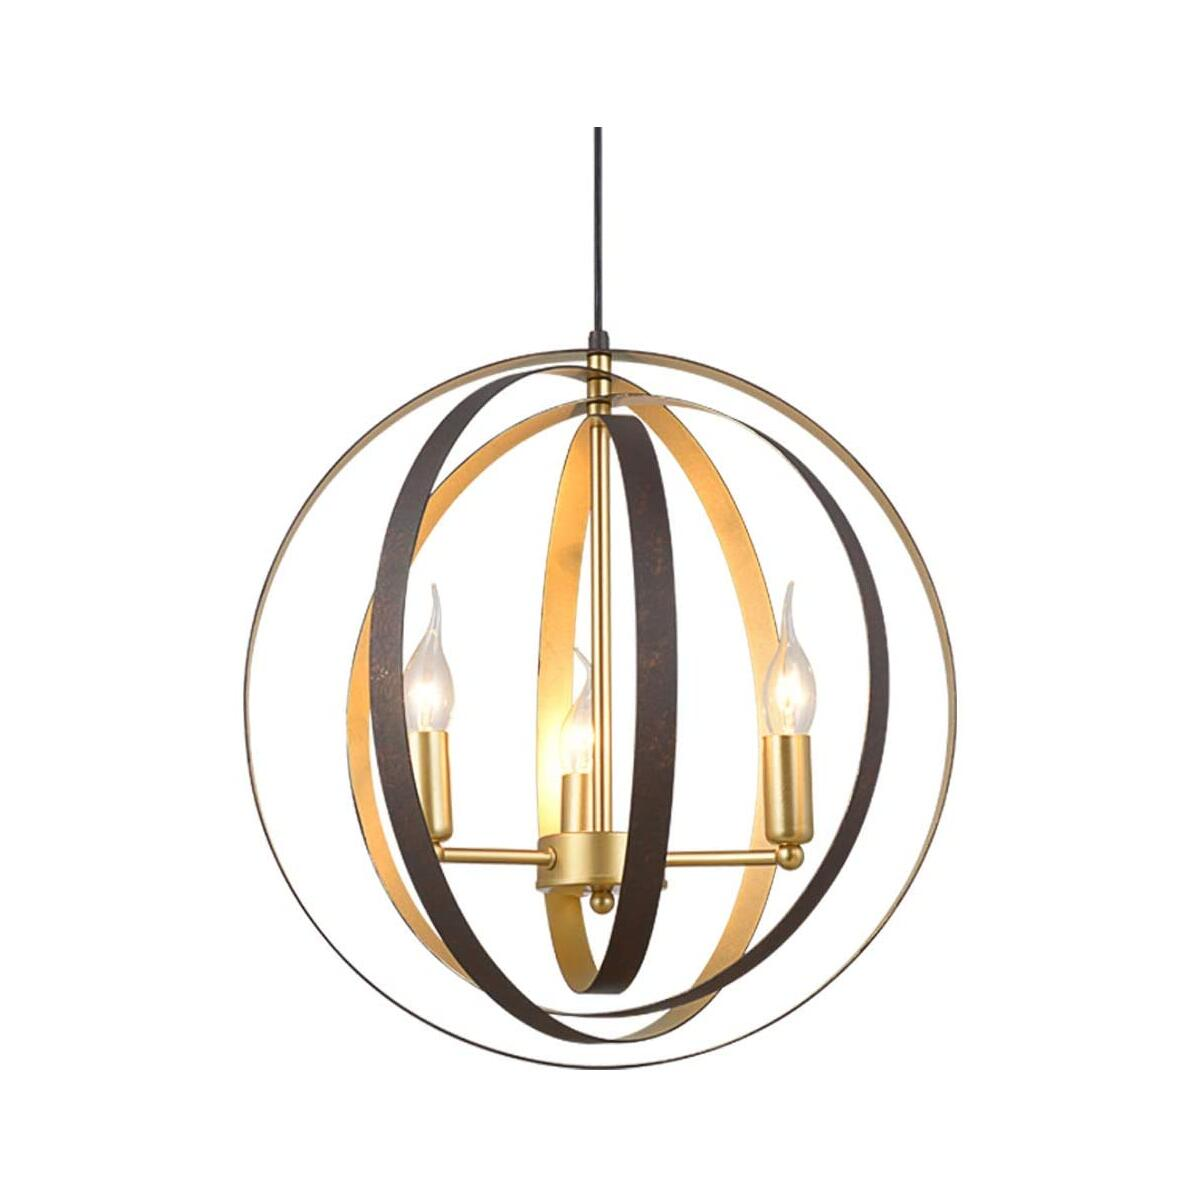 Vintage Spherical Farmhouse Chandelier for Dining Room, 19.68